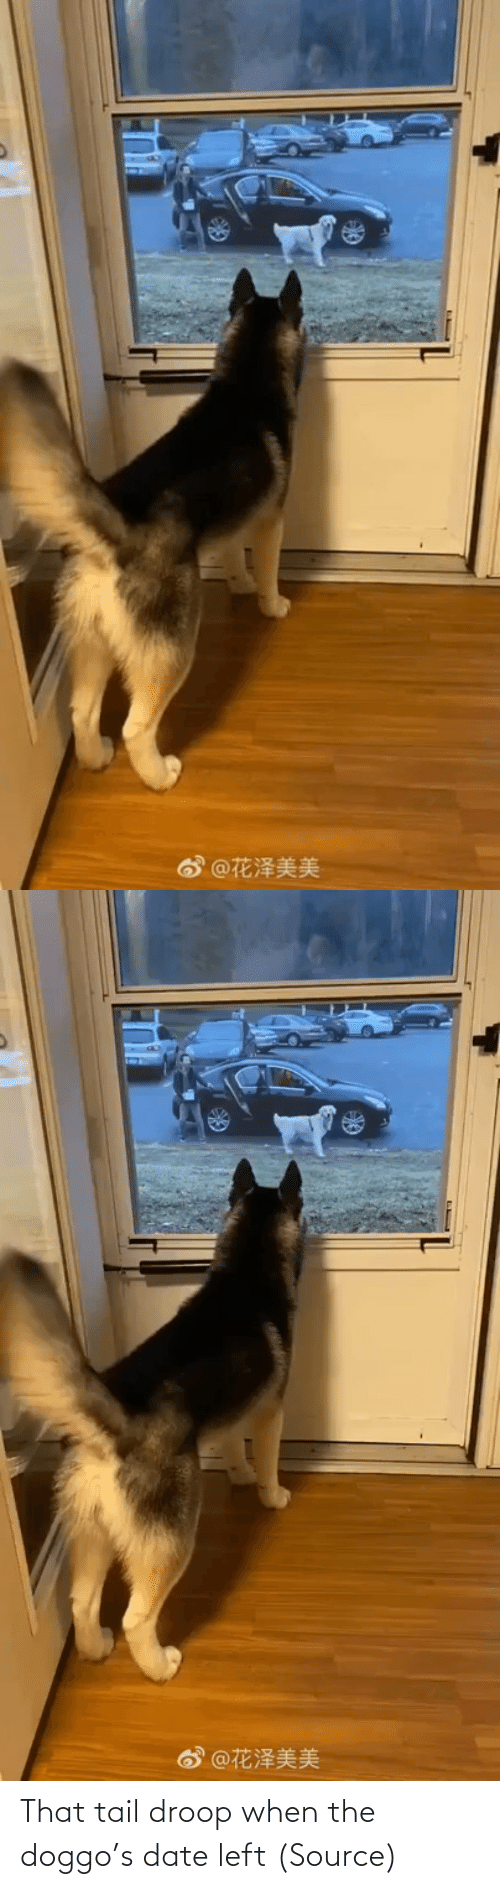 doggo: That tail droop when the doggo's date left (Source)